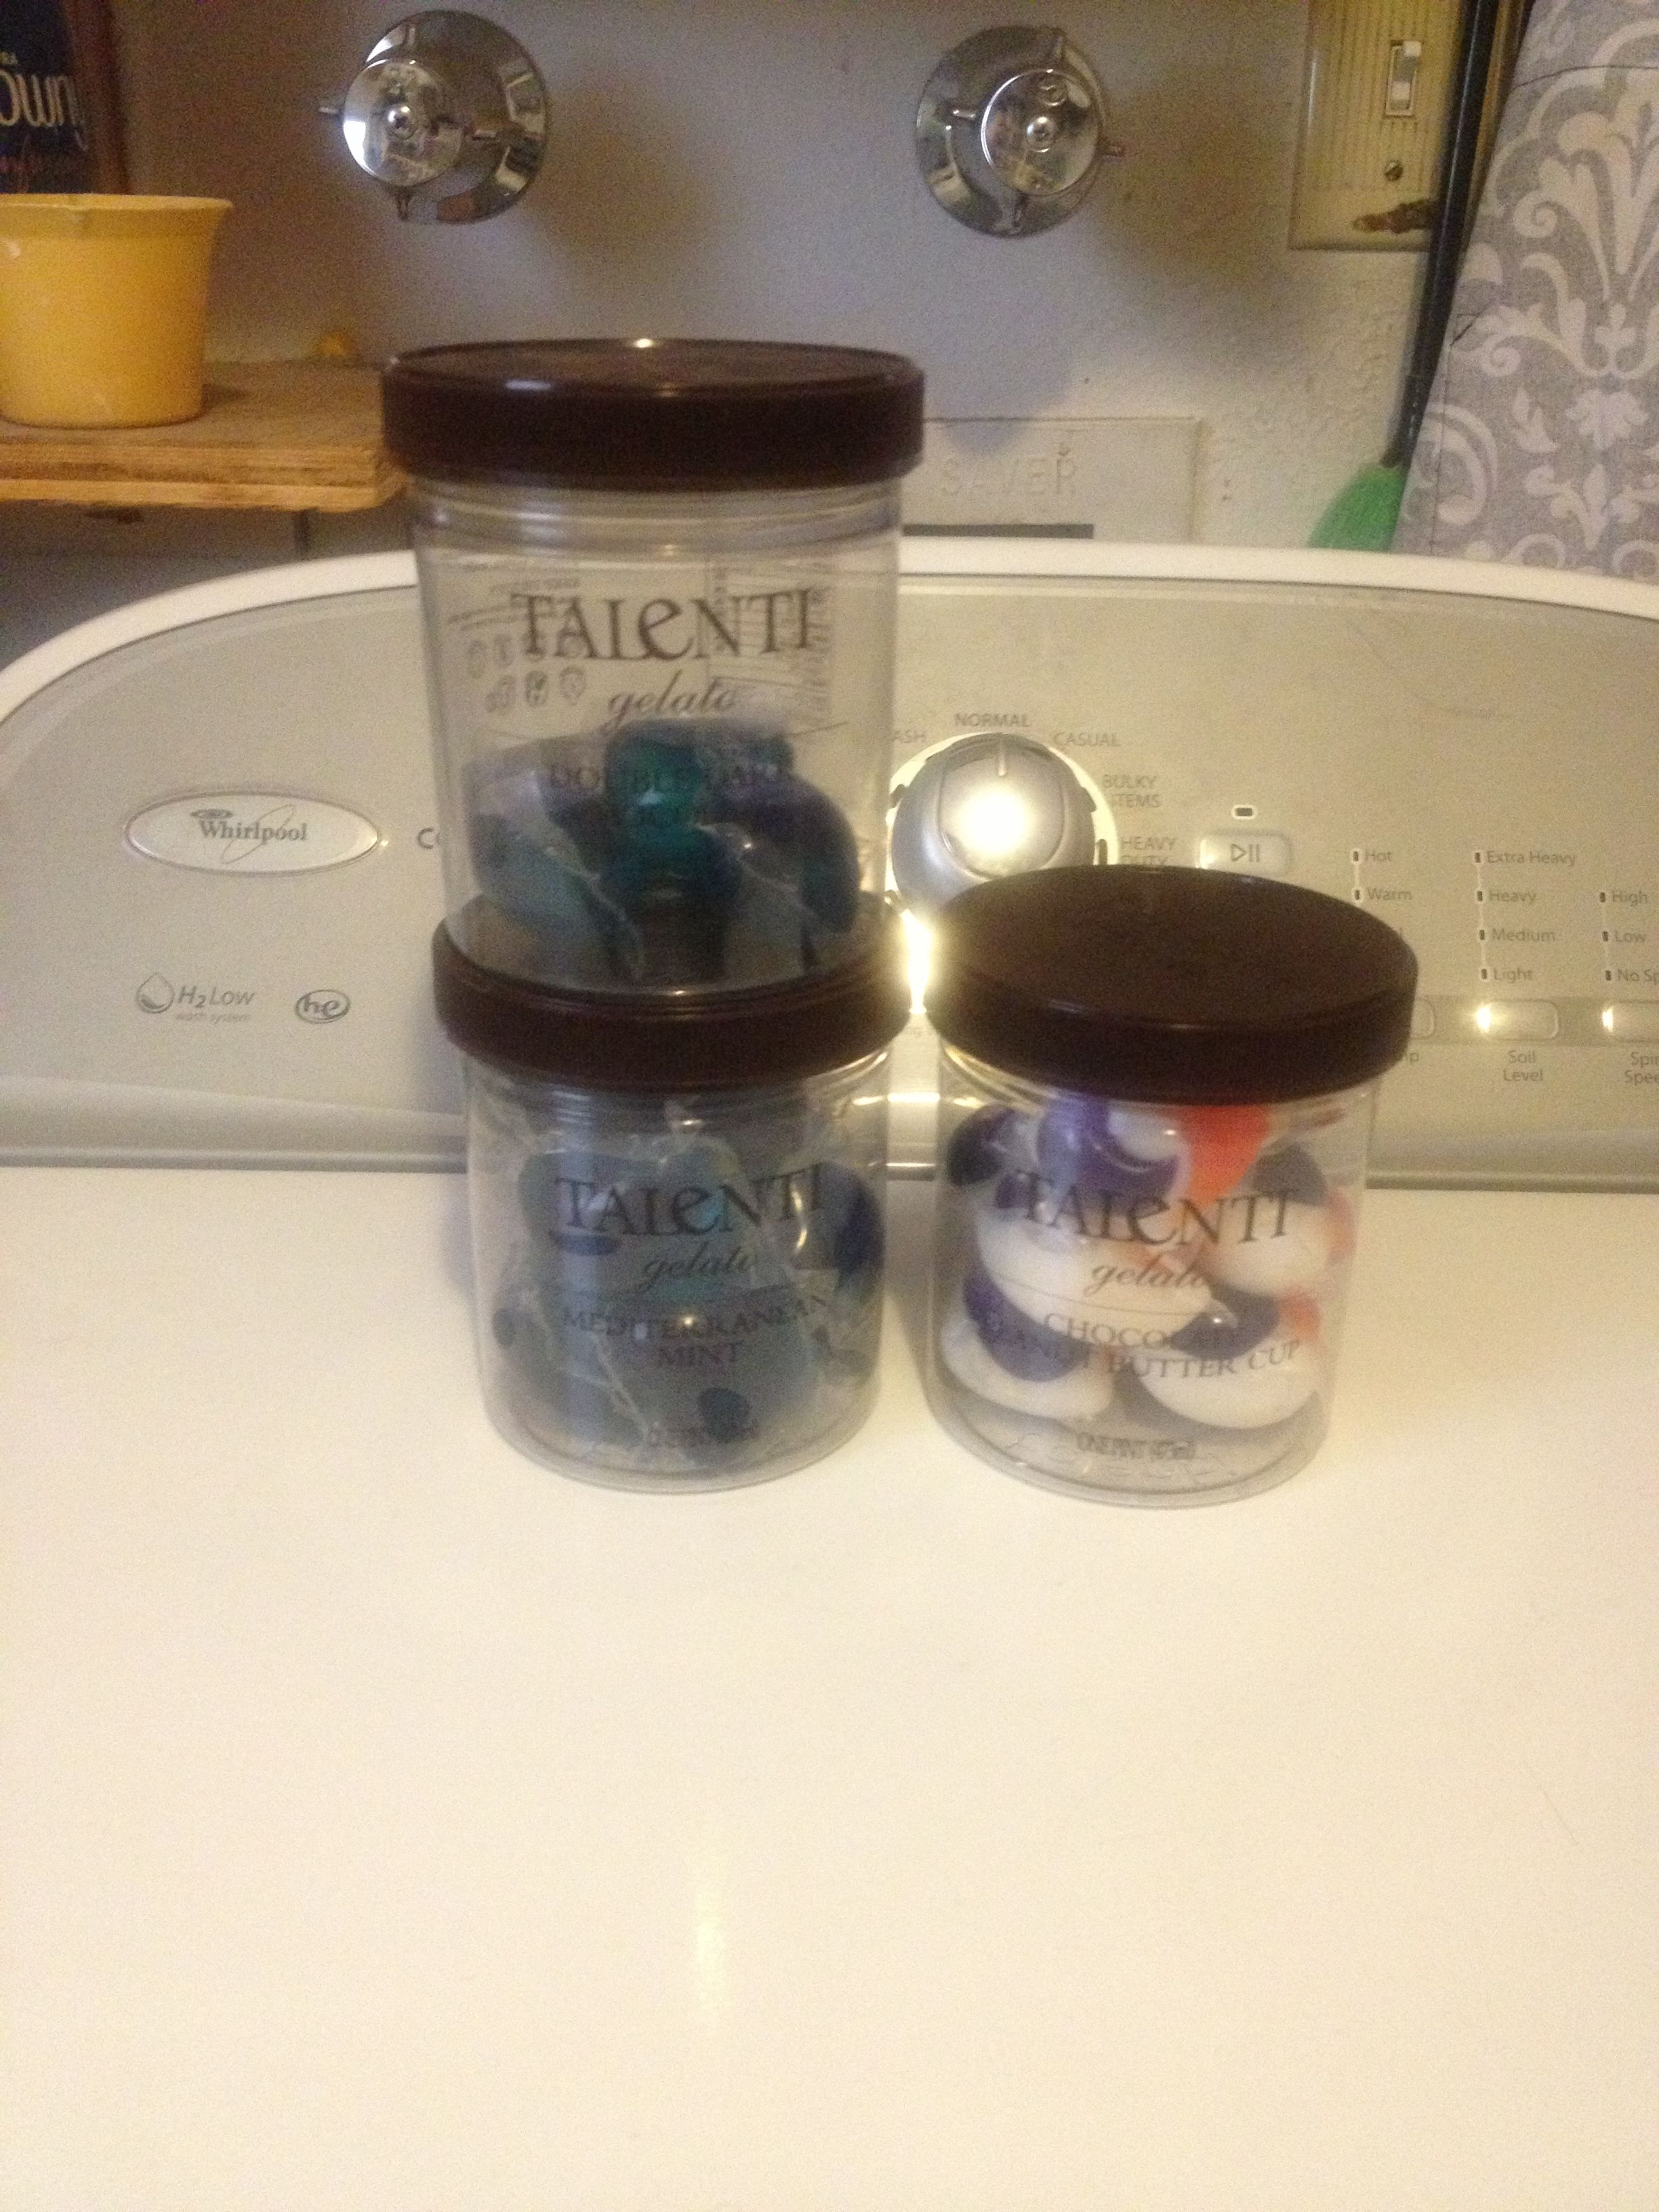 Talenti Gelato plastic containers are great for storing Tide Pods or other laundry detergent pods. It seals the moisture out while saving the space that the bags take up. It also looks more organized. #tidepodscontainercrafts